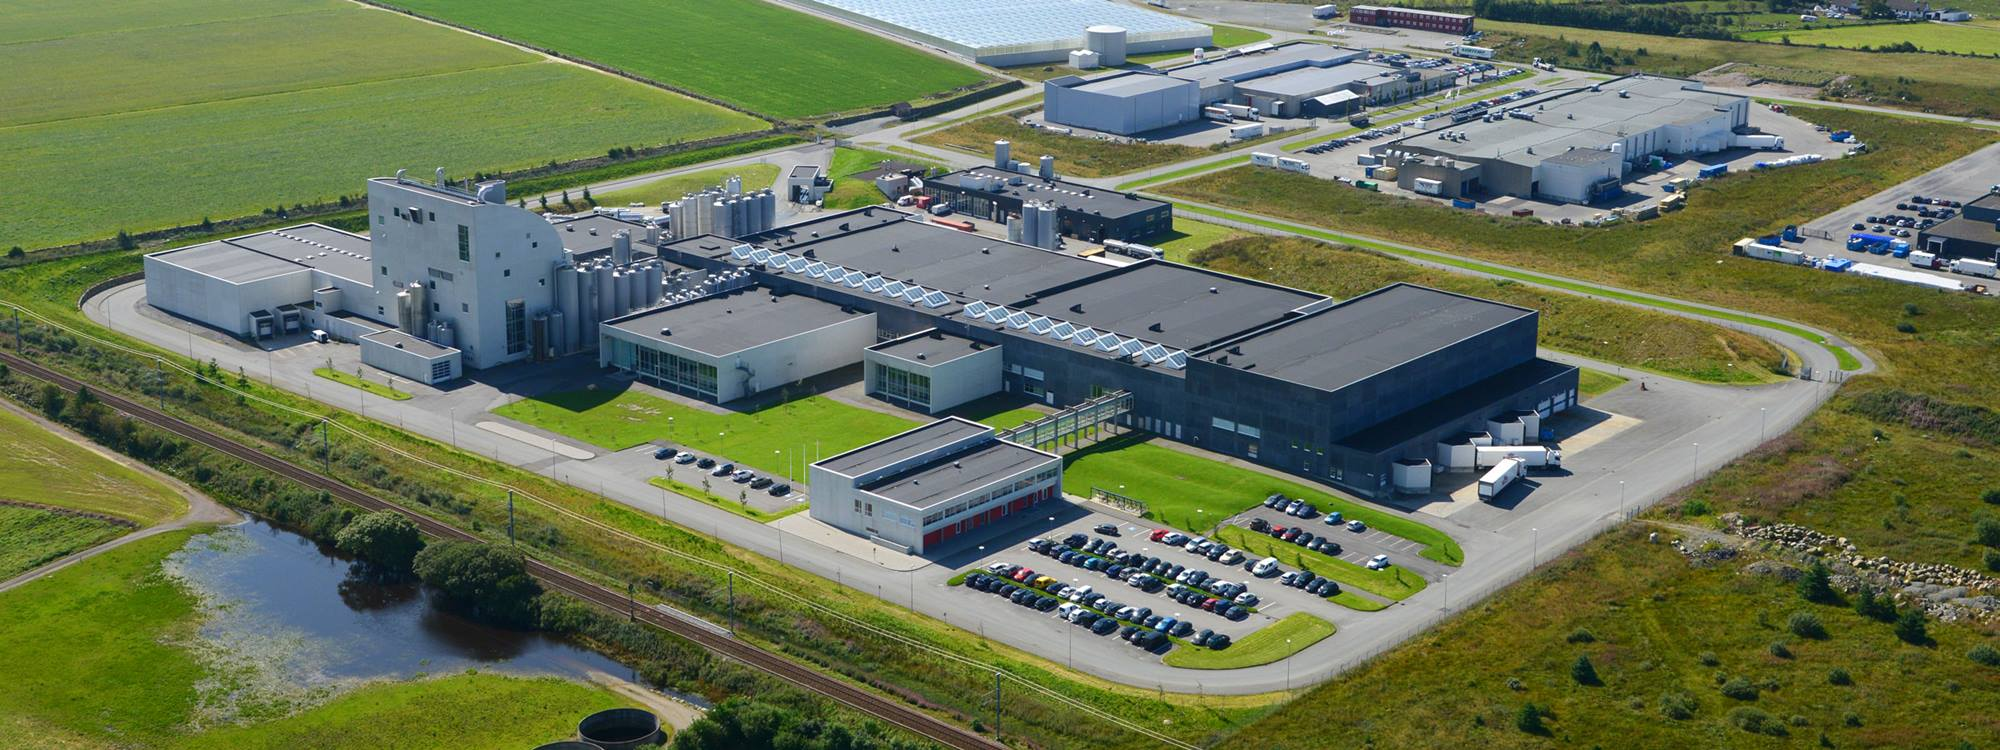 Tine Meieri production site in Norway